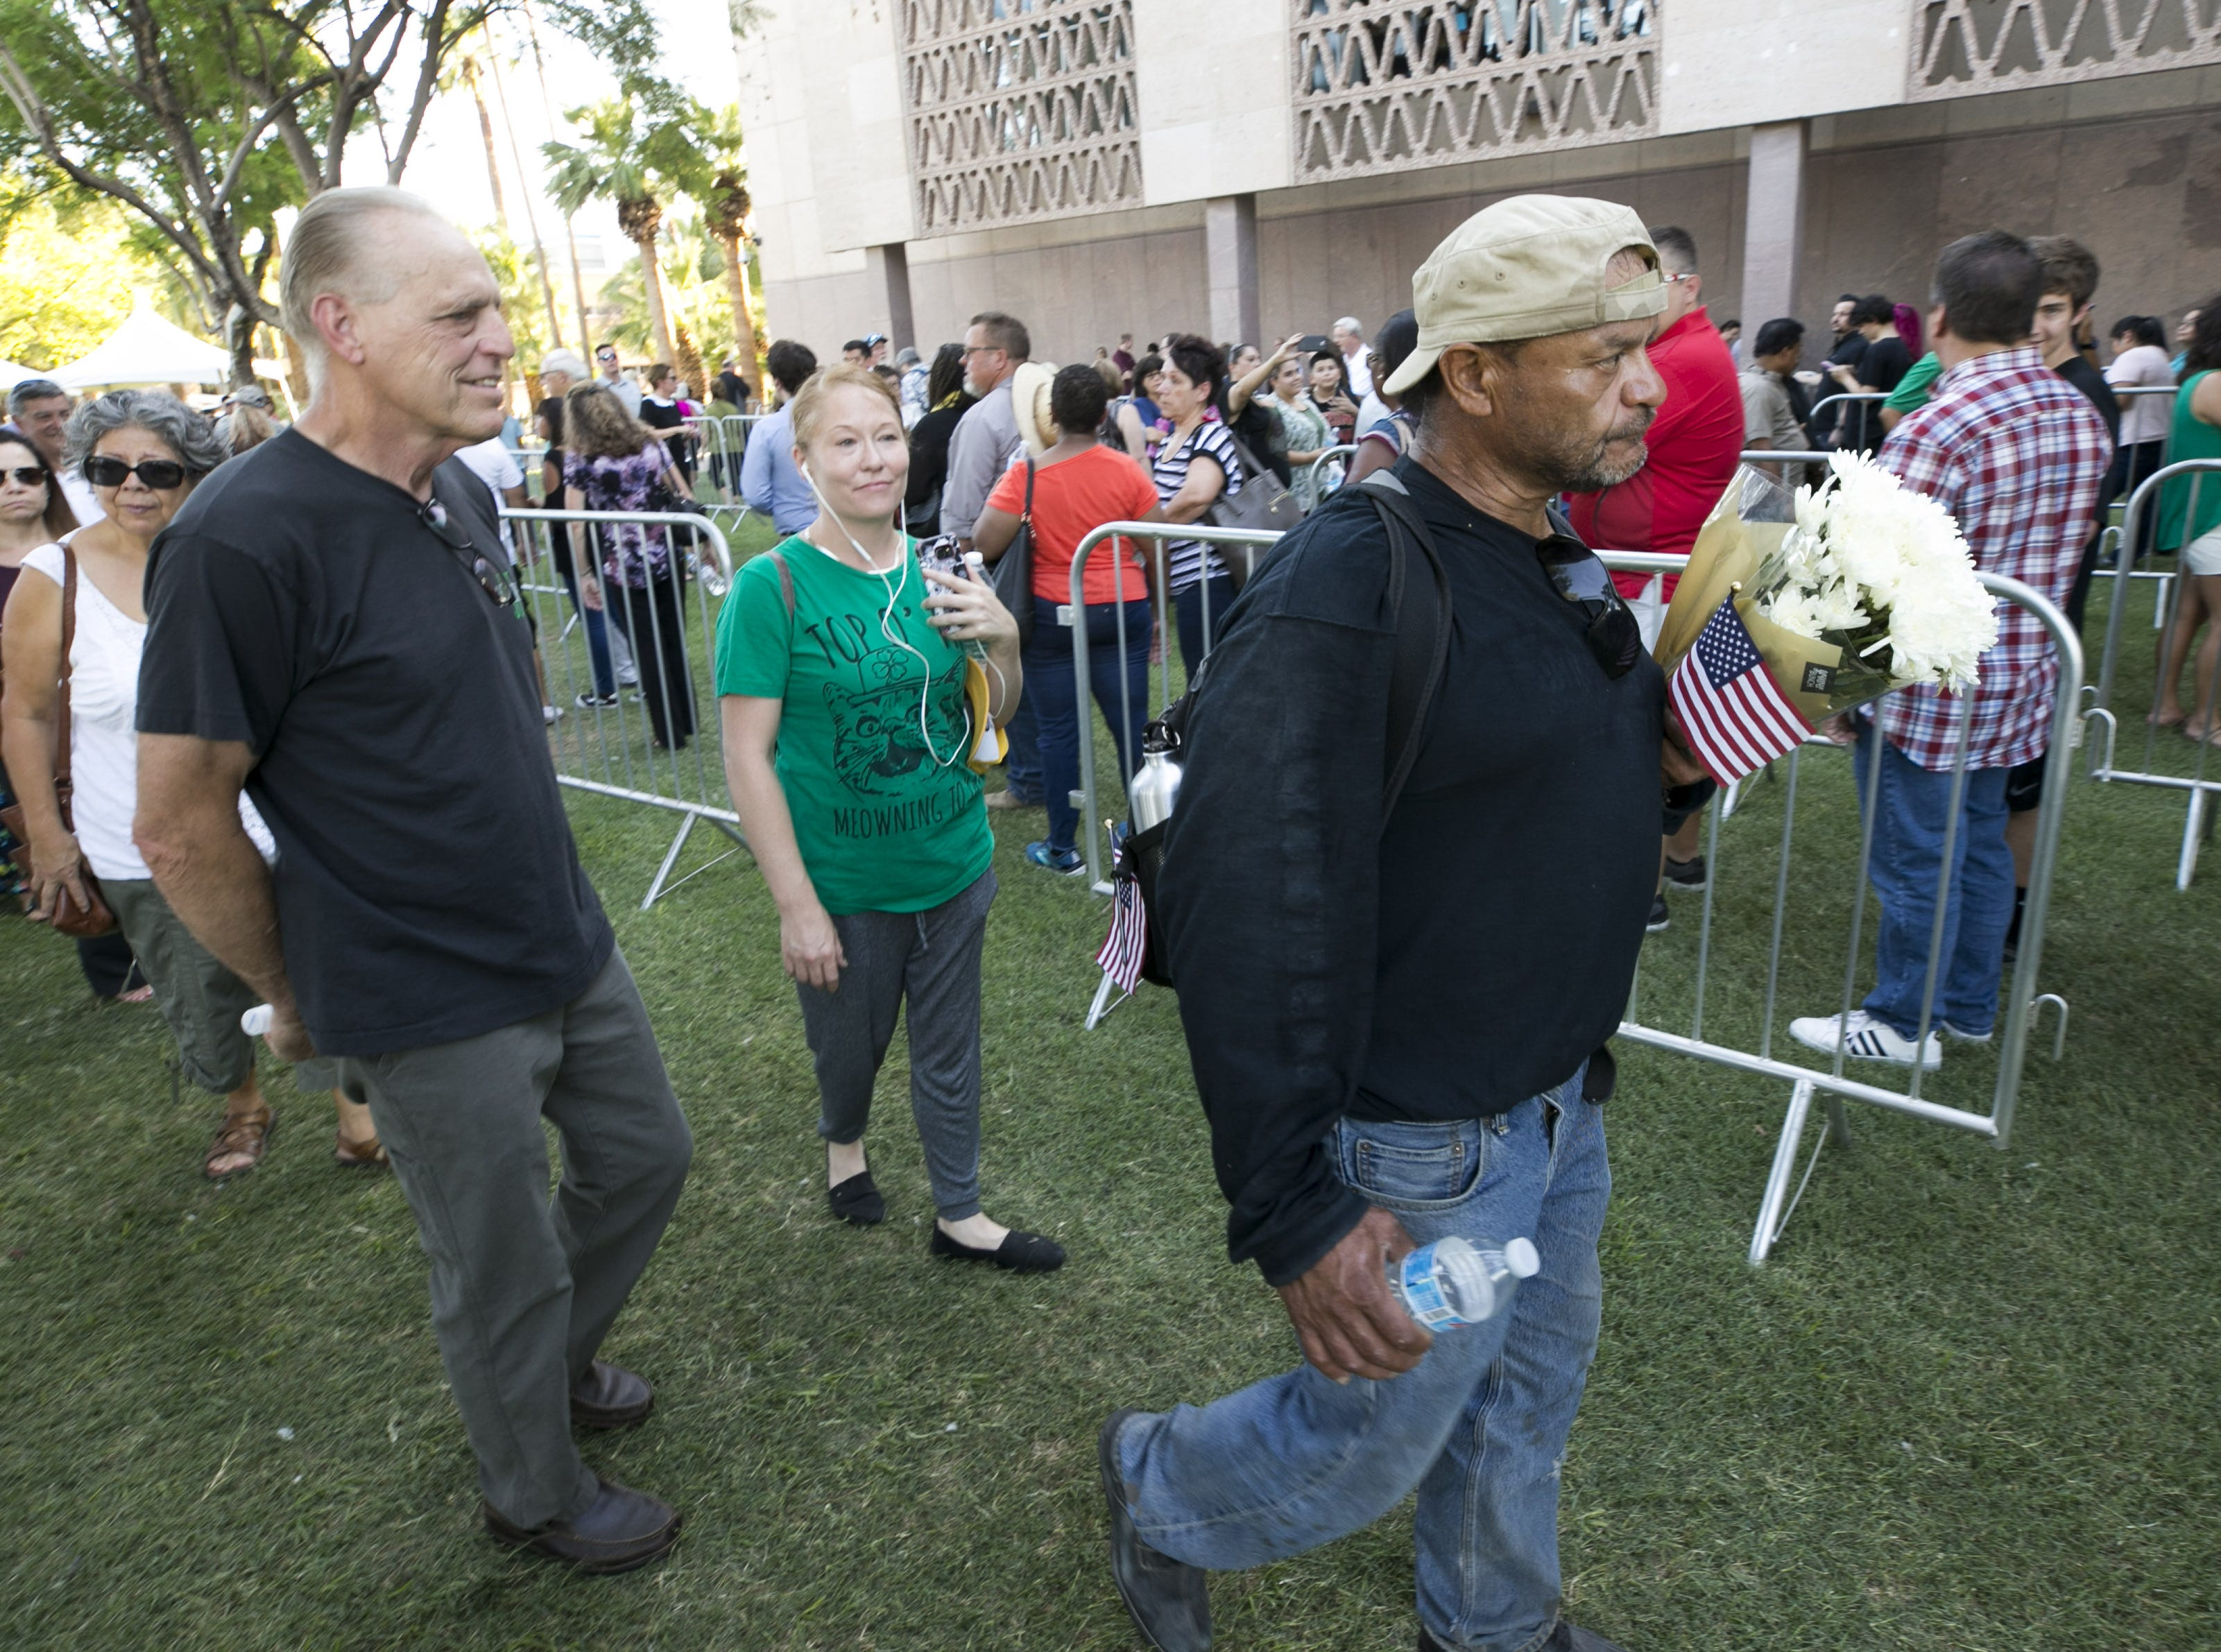 Holding flowers and an American flag, Pedro Montoya of Phoenix, waits in line to pay his respects to Senator John McCain lying in state in the Arizona Capitol in Phoenix on Wednesday, August 29, 2018.